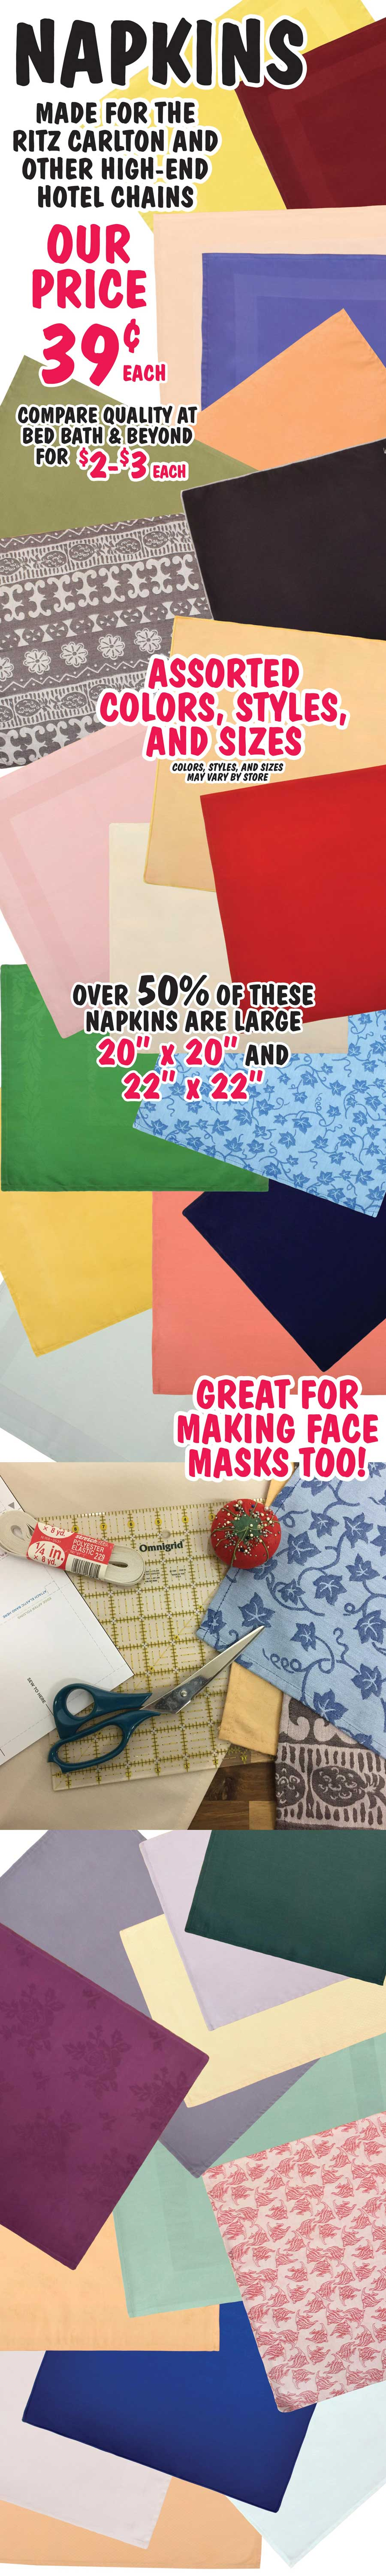 Napkins Special Buy 39 cents each - Great for Making Face Masks too